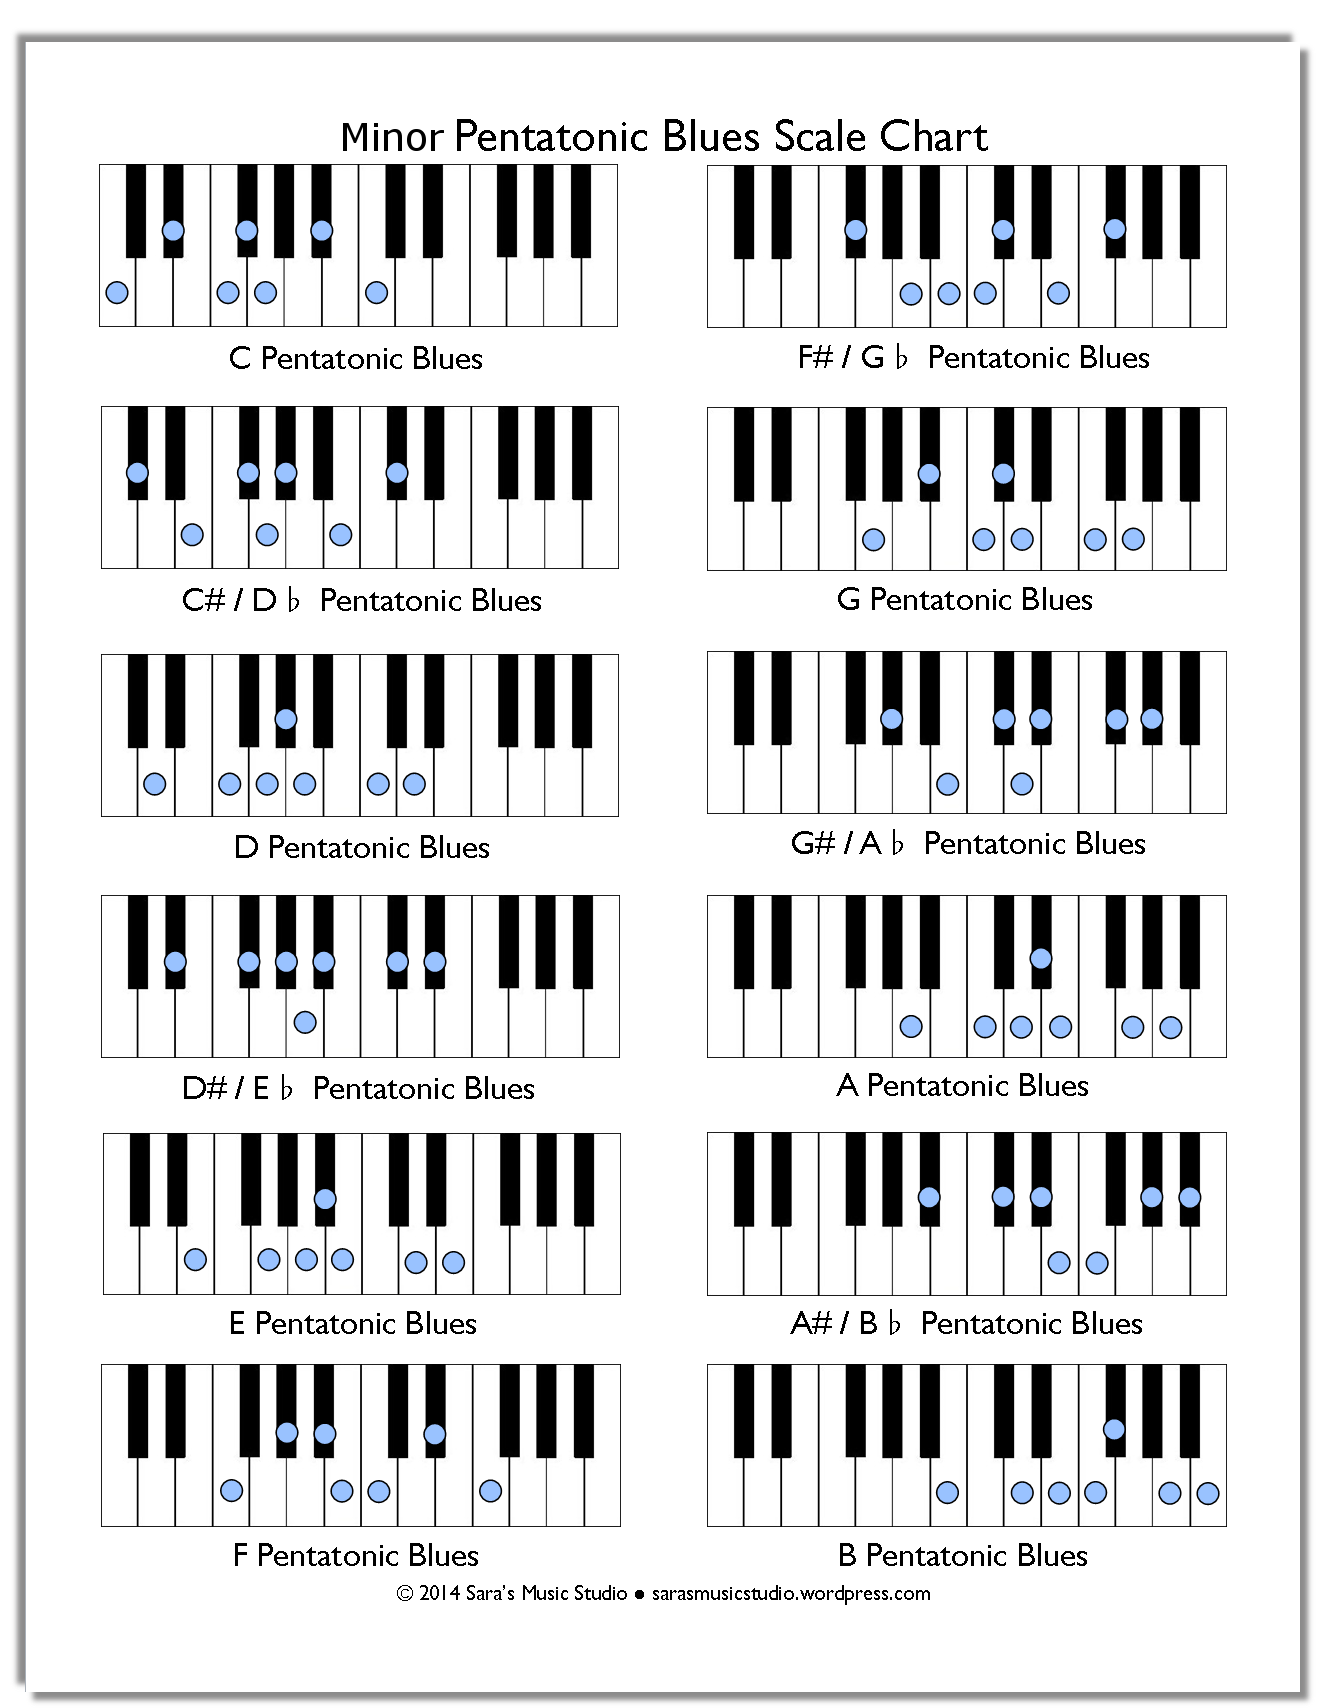 Free Minor Pentatonic Blues Scale Chart – Sara's Music Studio